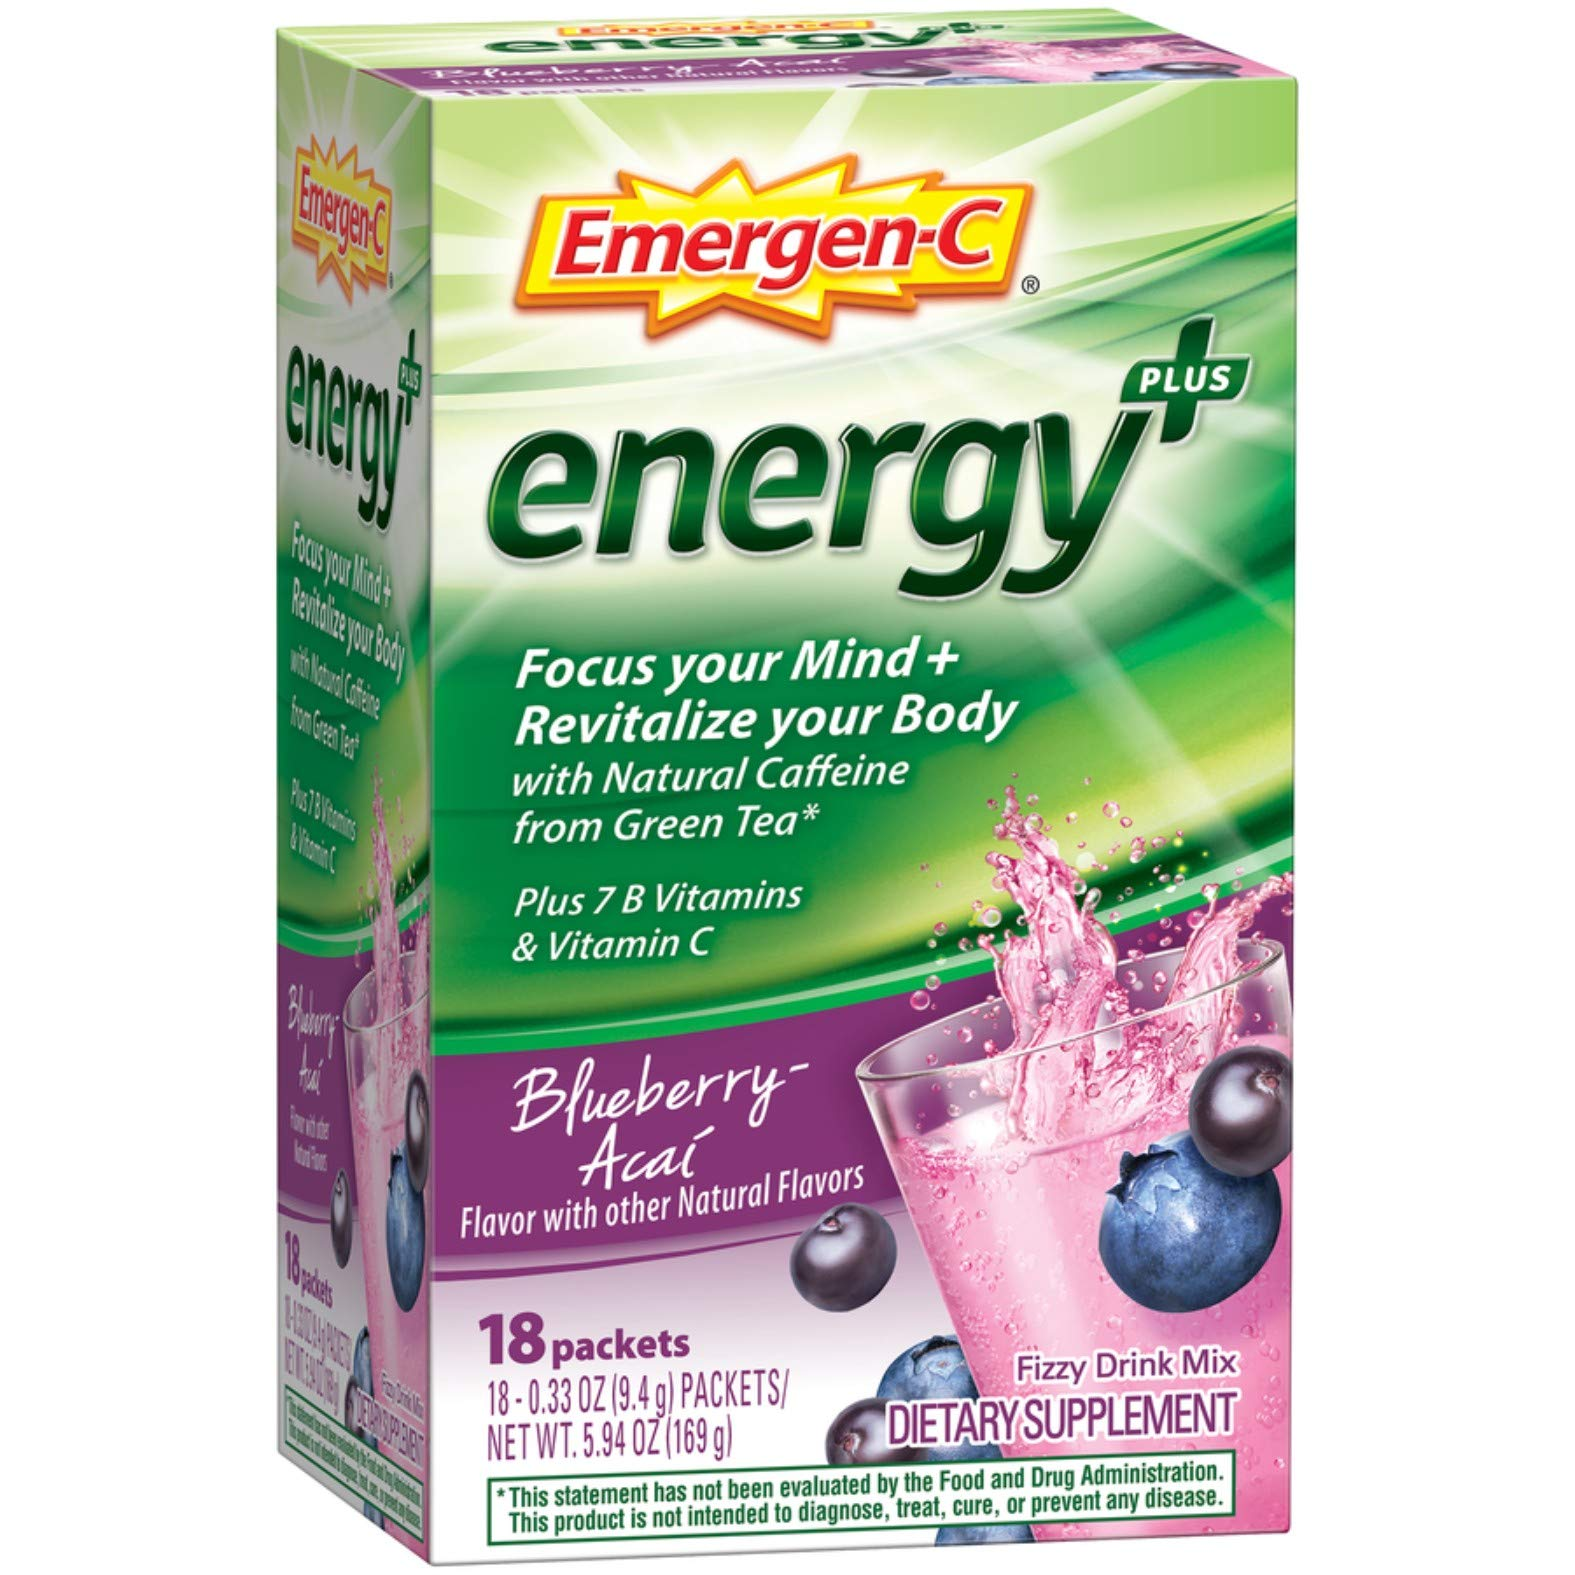 Emergen-C Energy+ (18 Count, Blueberry-Acai Flavor) Dietary Supplement Drink Mix with Caffeine, 0.33 Ounce Powder Packets